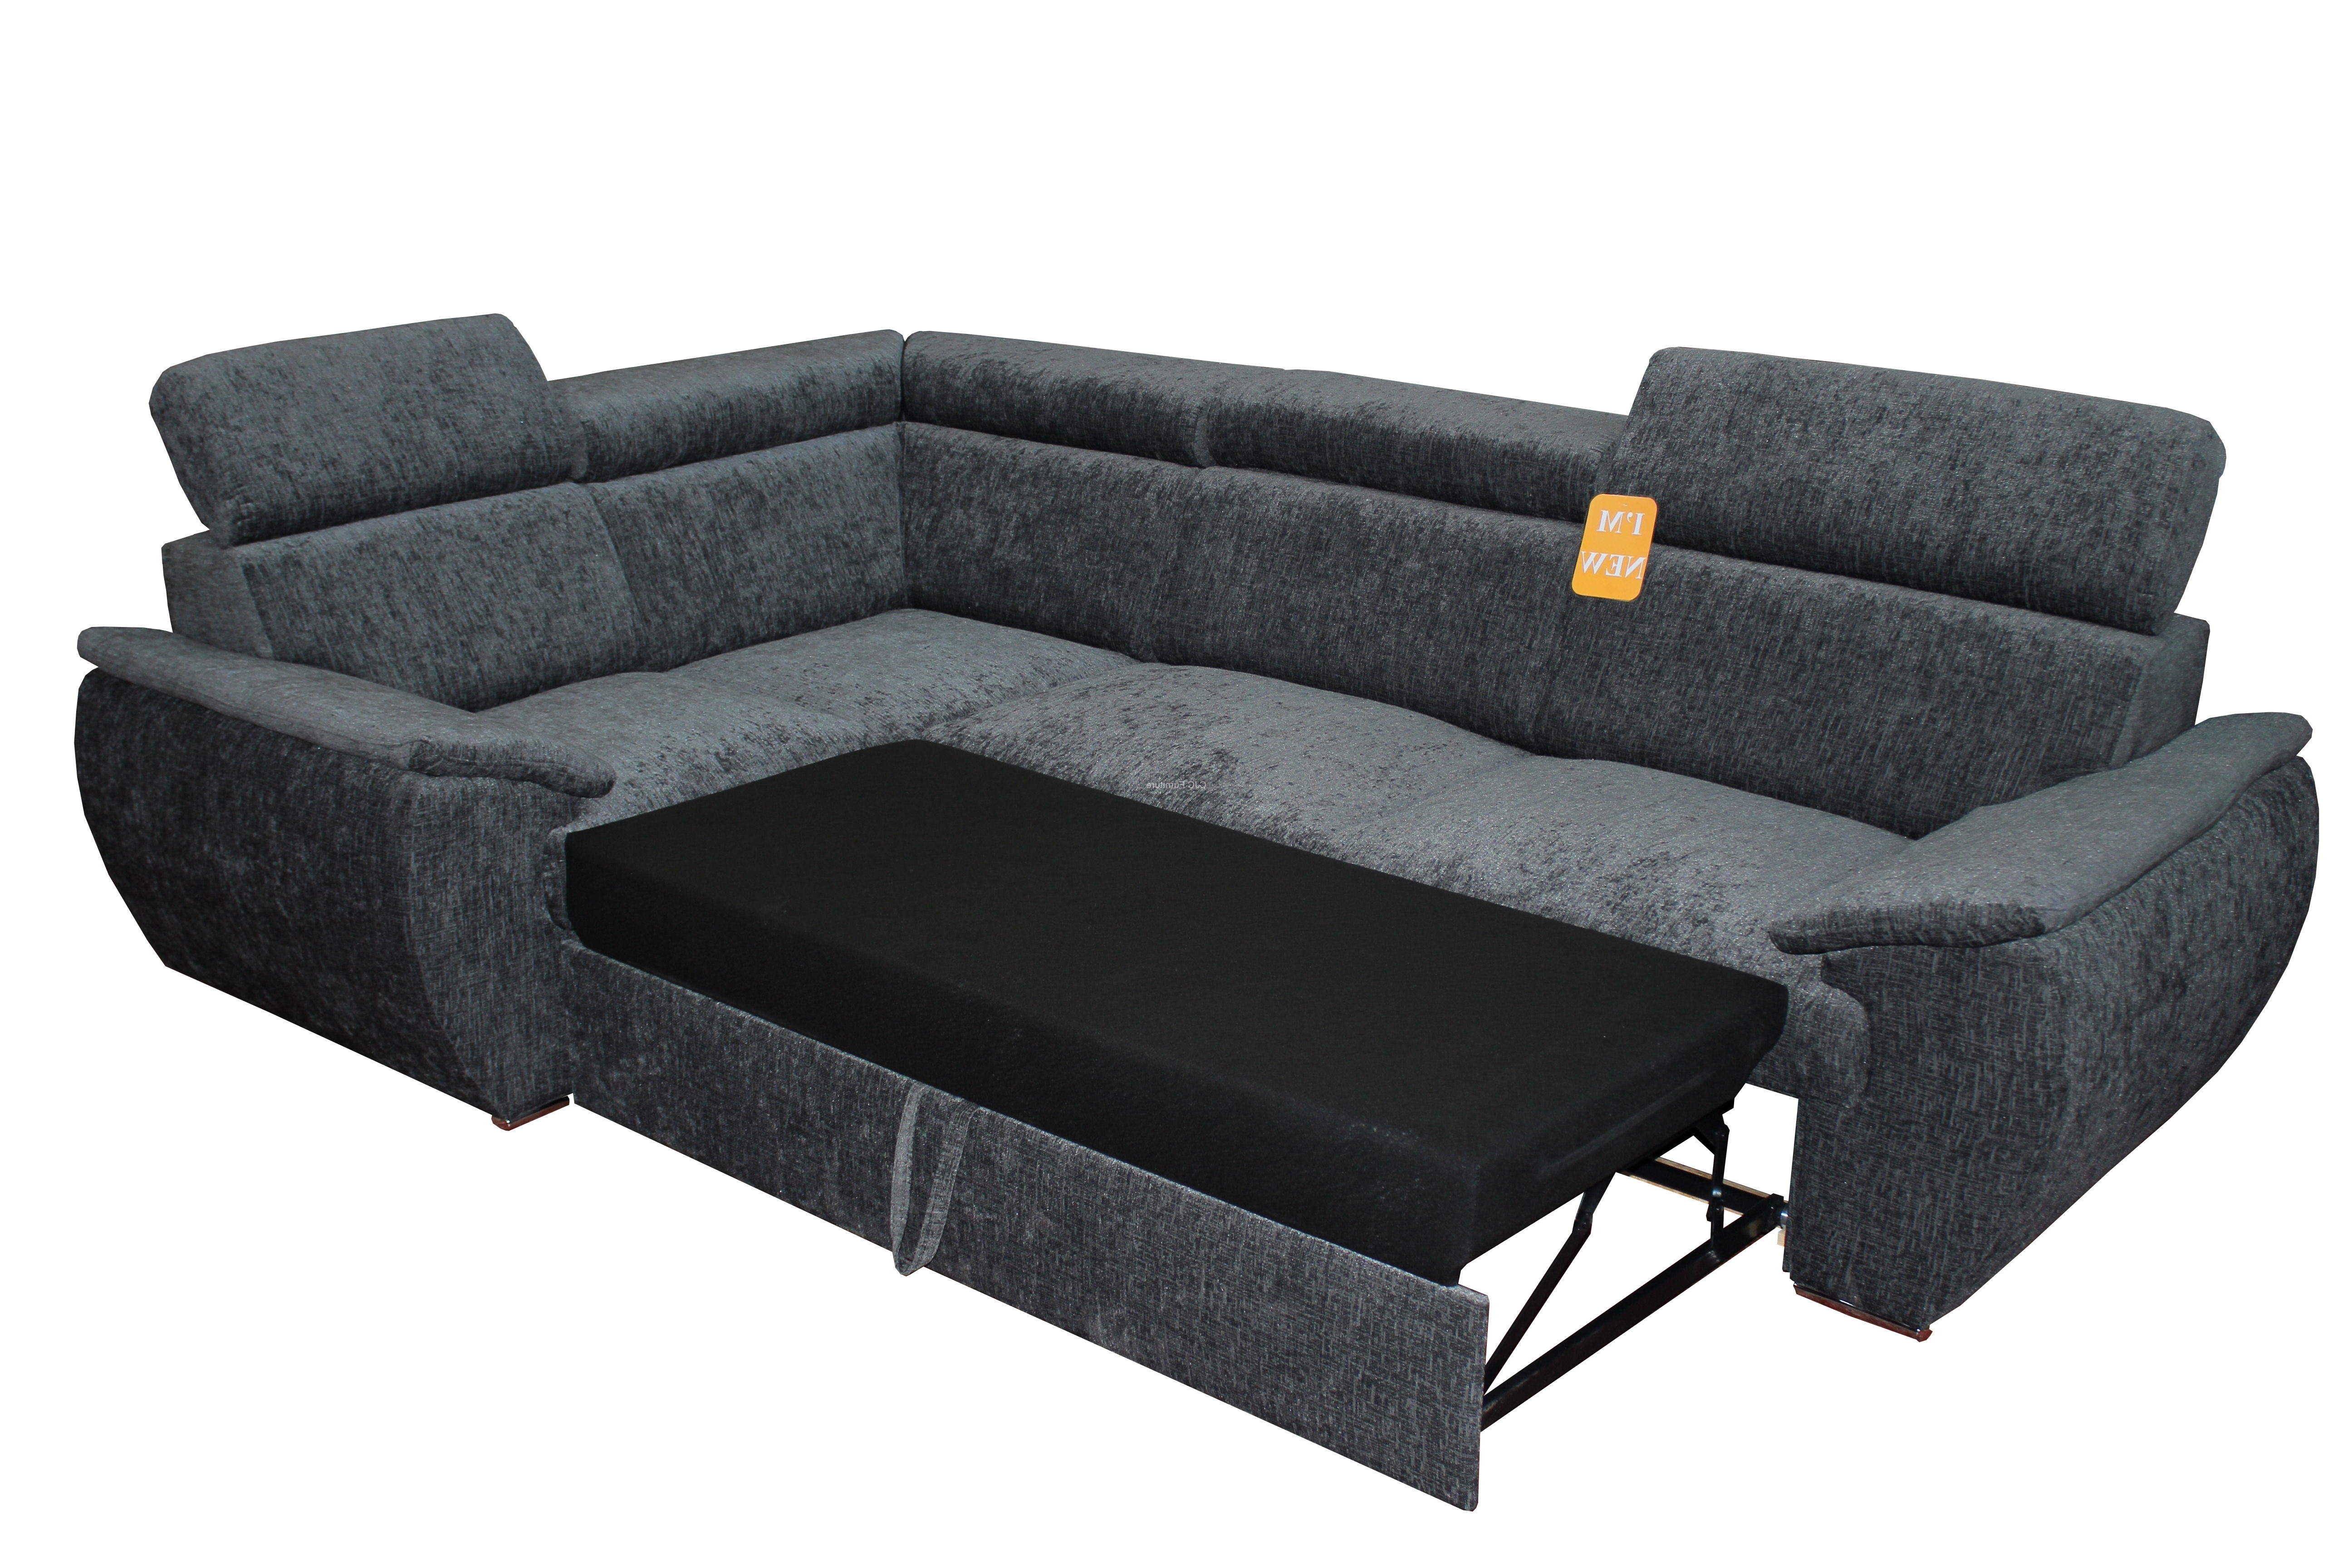 Sectional Sofas Under 200 Throughout Preferred Cheap Sofas Under 200 – Mforum (View 12 of 15)